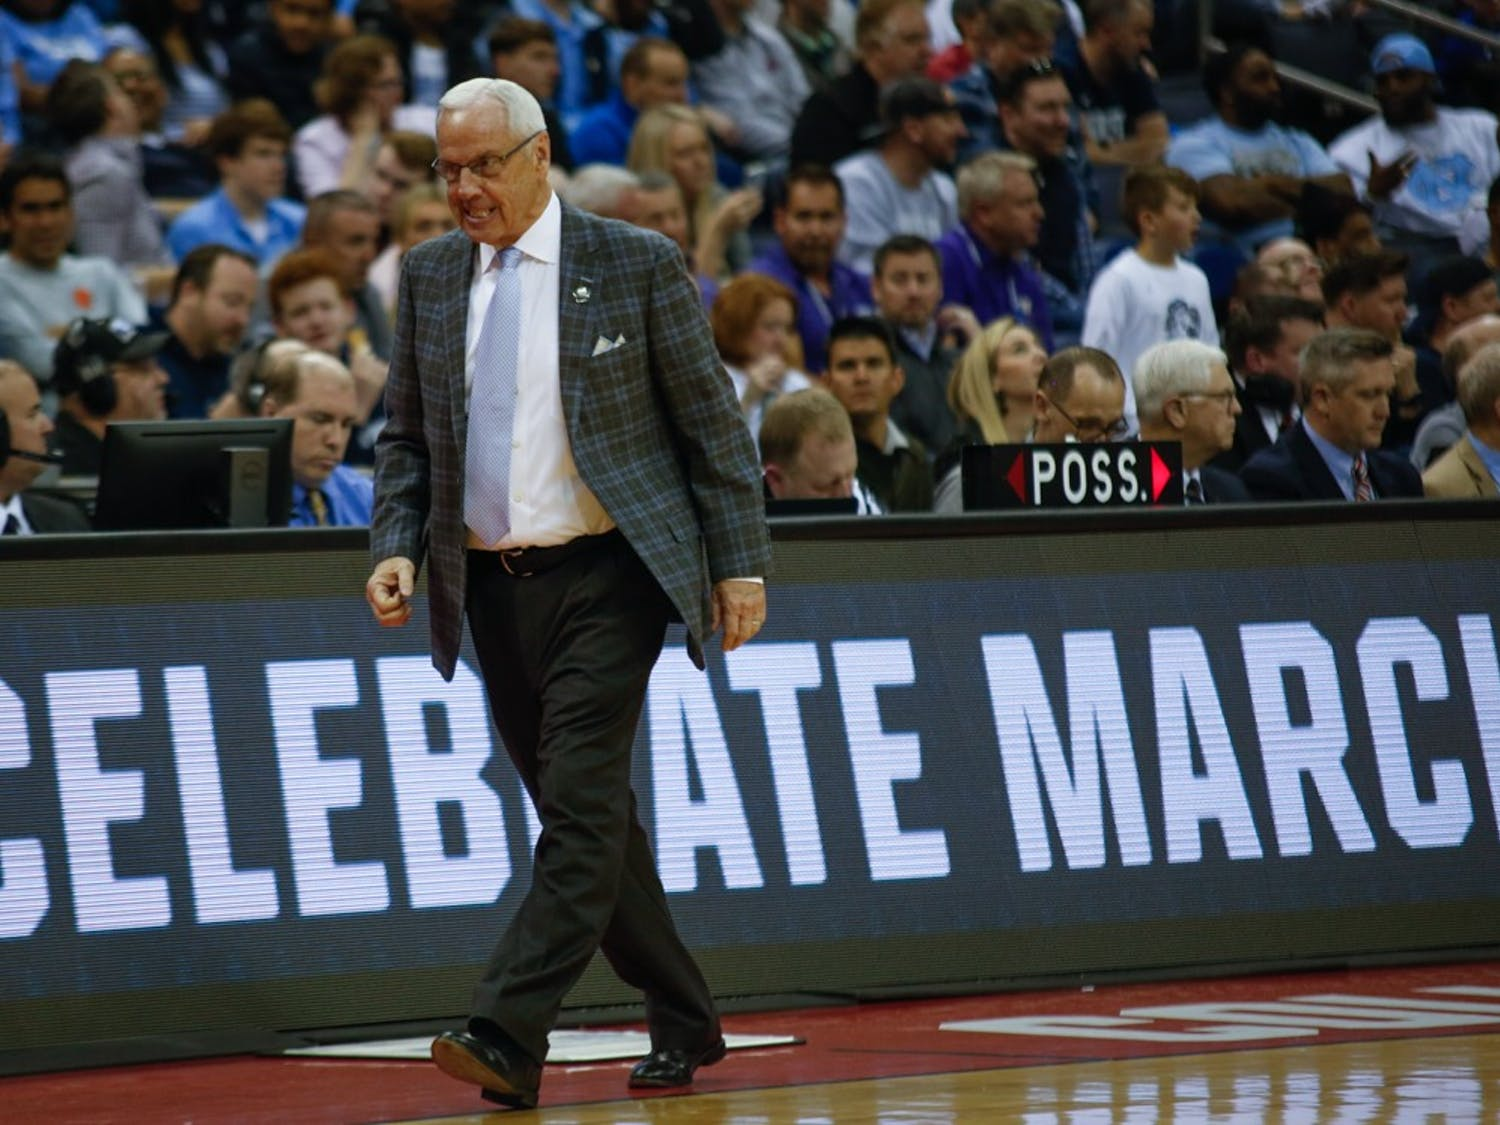 UNC coach Roy Williams storms down the court while UNC was down 5 points against 16-seed Iona in the first round of the NCAA Championship at Nationwide Arena in Columbus, Ohio on Friday, March 22, 2019. UNC won 88-73.